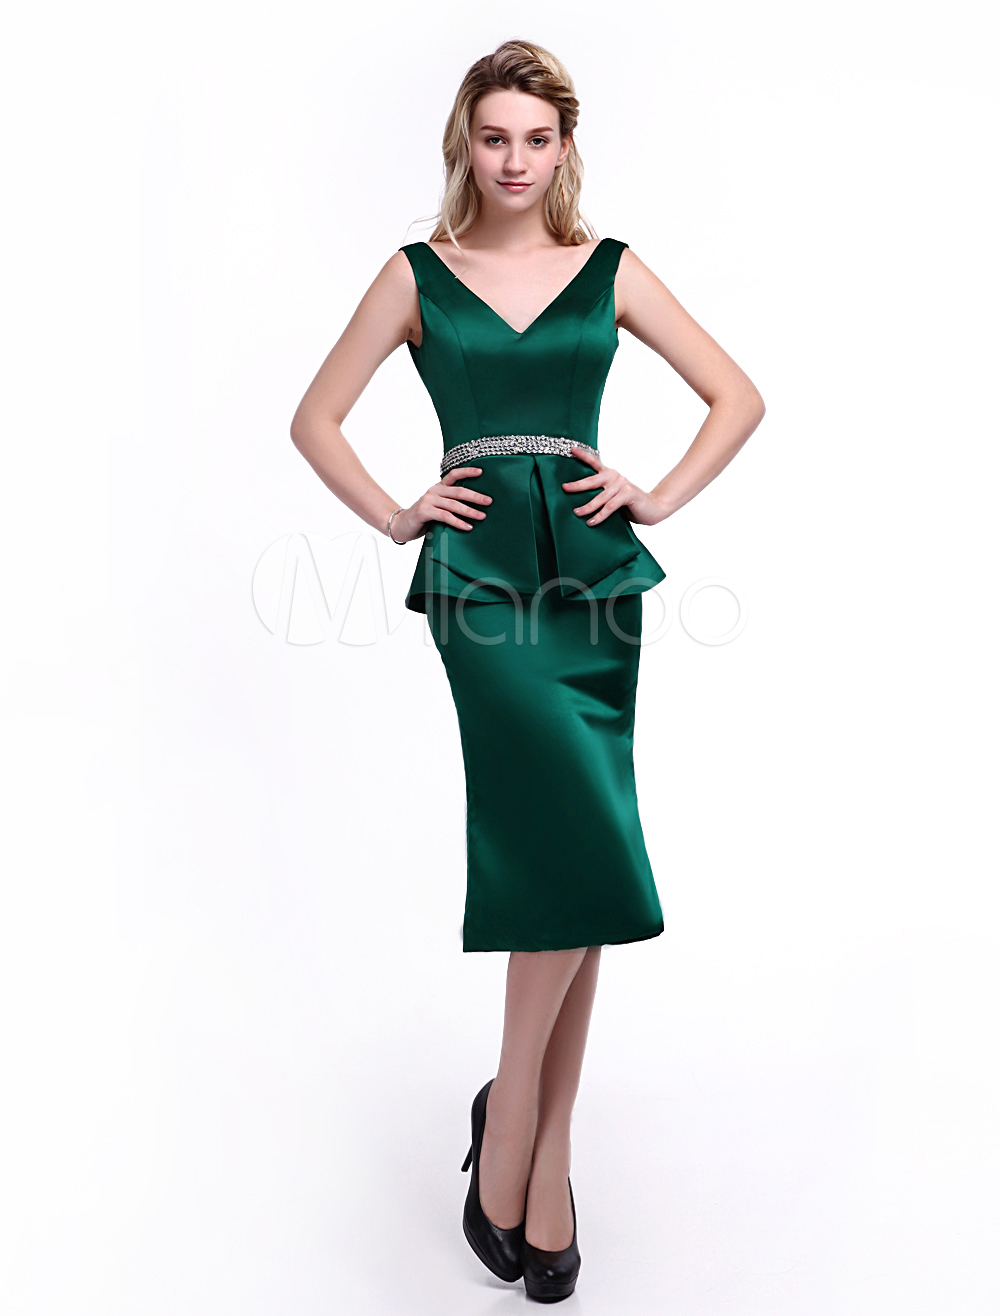 538866c94a71 ... Dress For Mother of the Bride with Sheath Off-The-Shoulder Satin. 12.  30%OFF. Color Dark Green